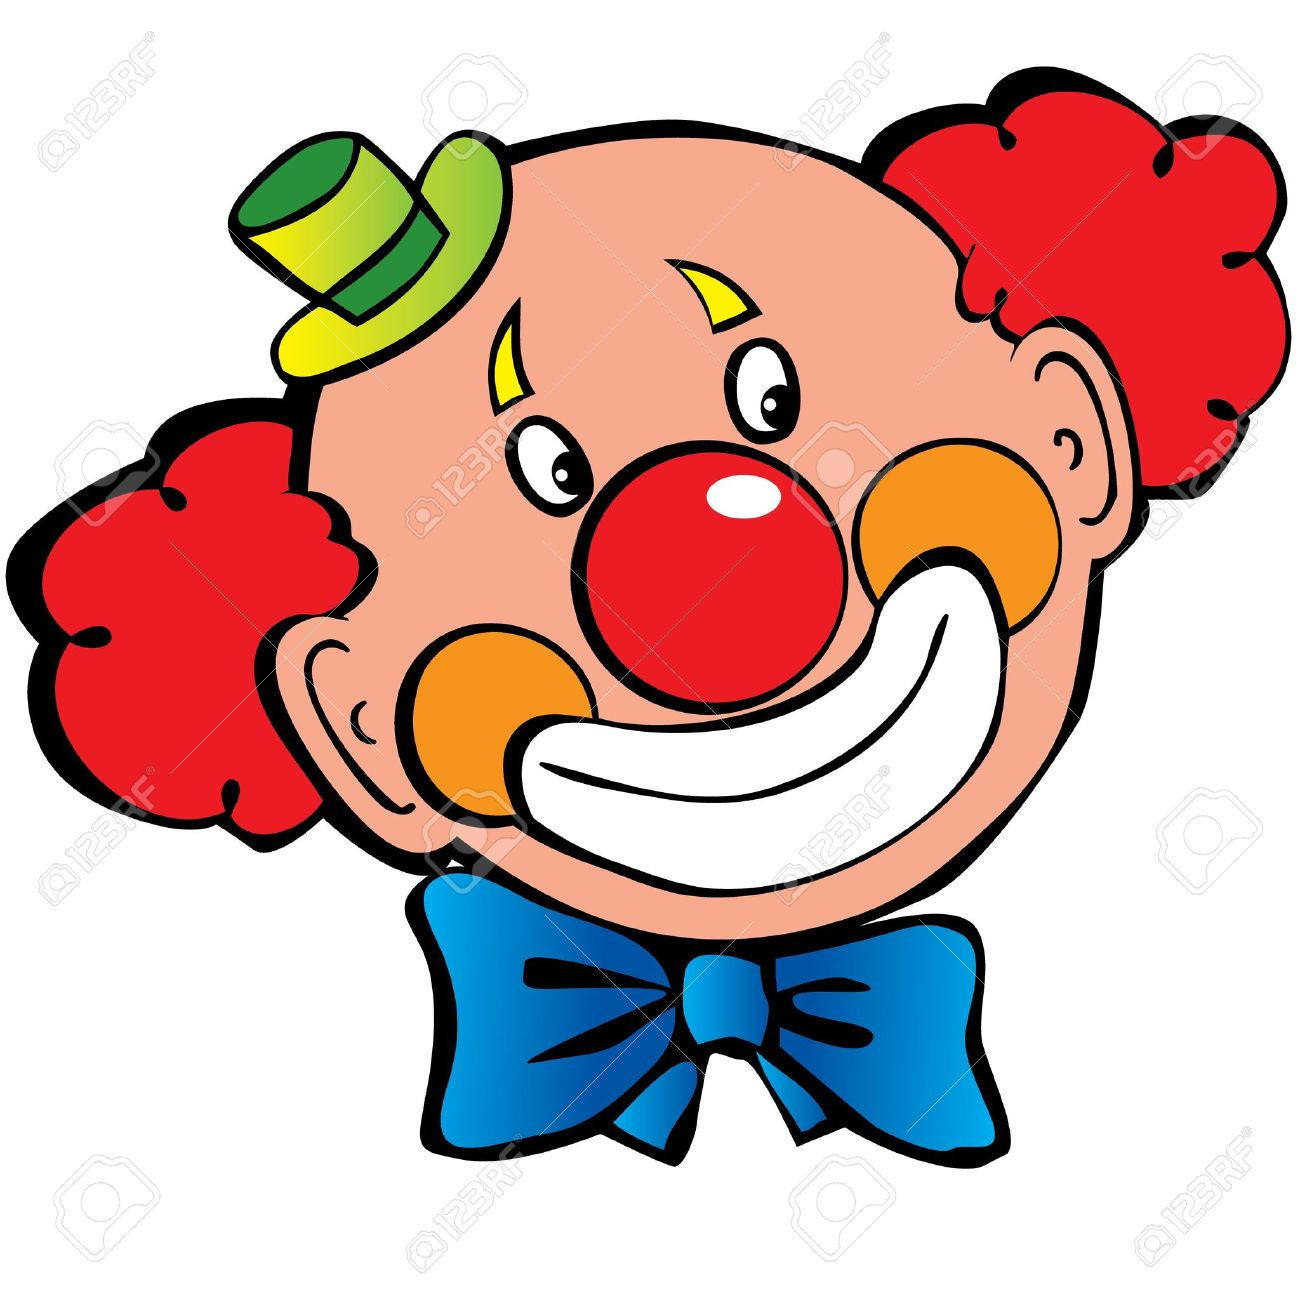 1300x1300 Collection Of Clown Clipart Images High Quality, Free